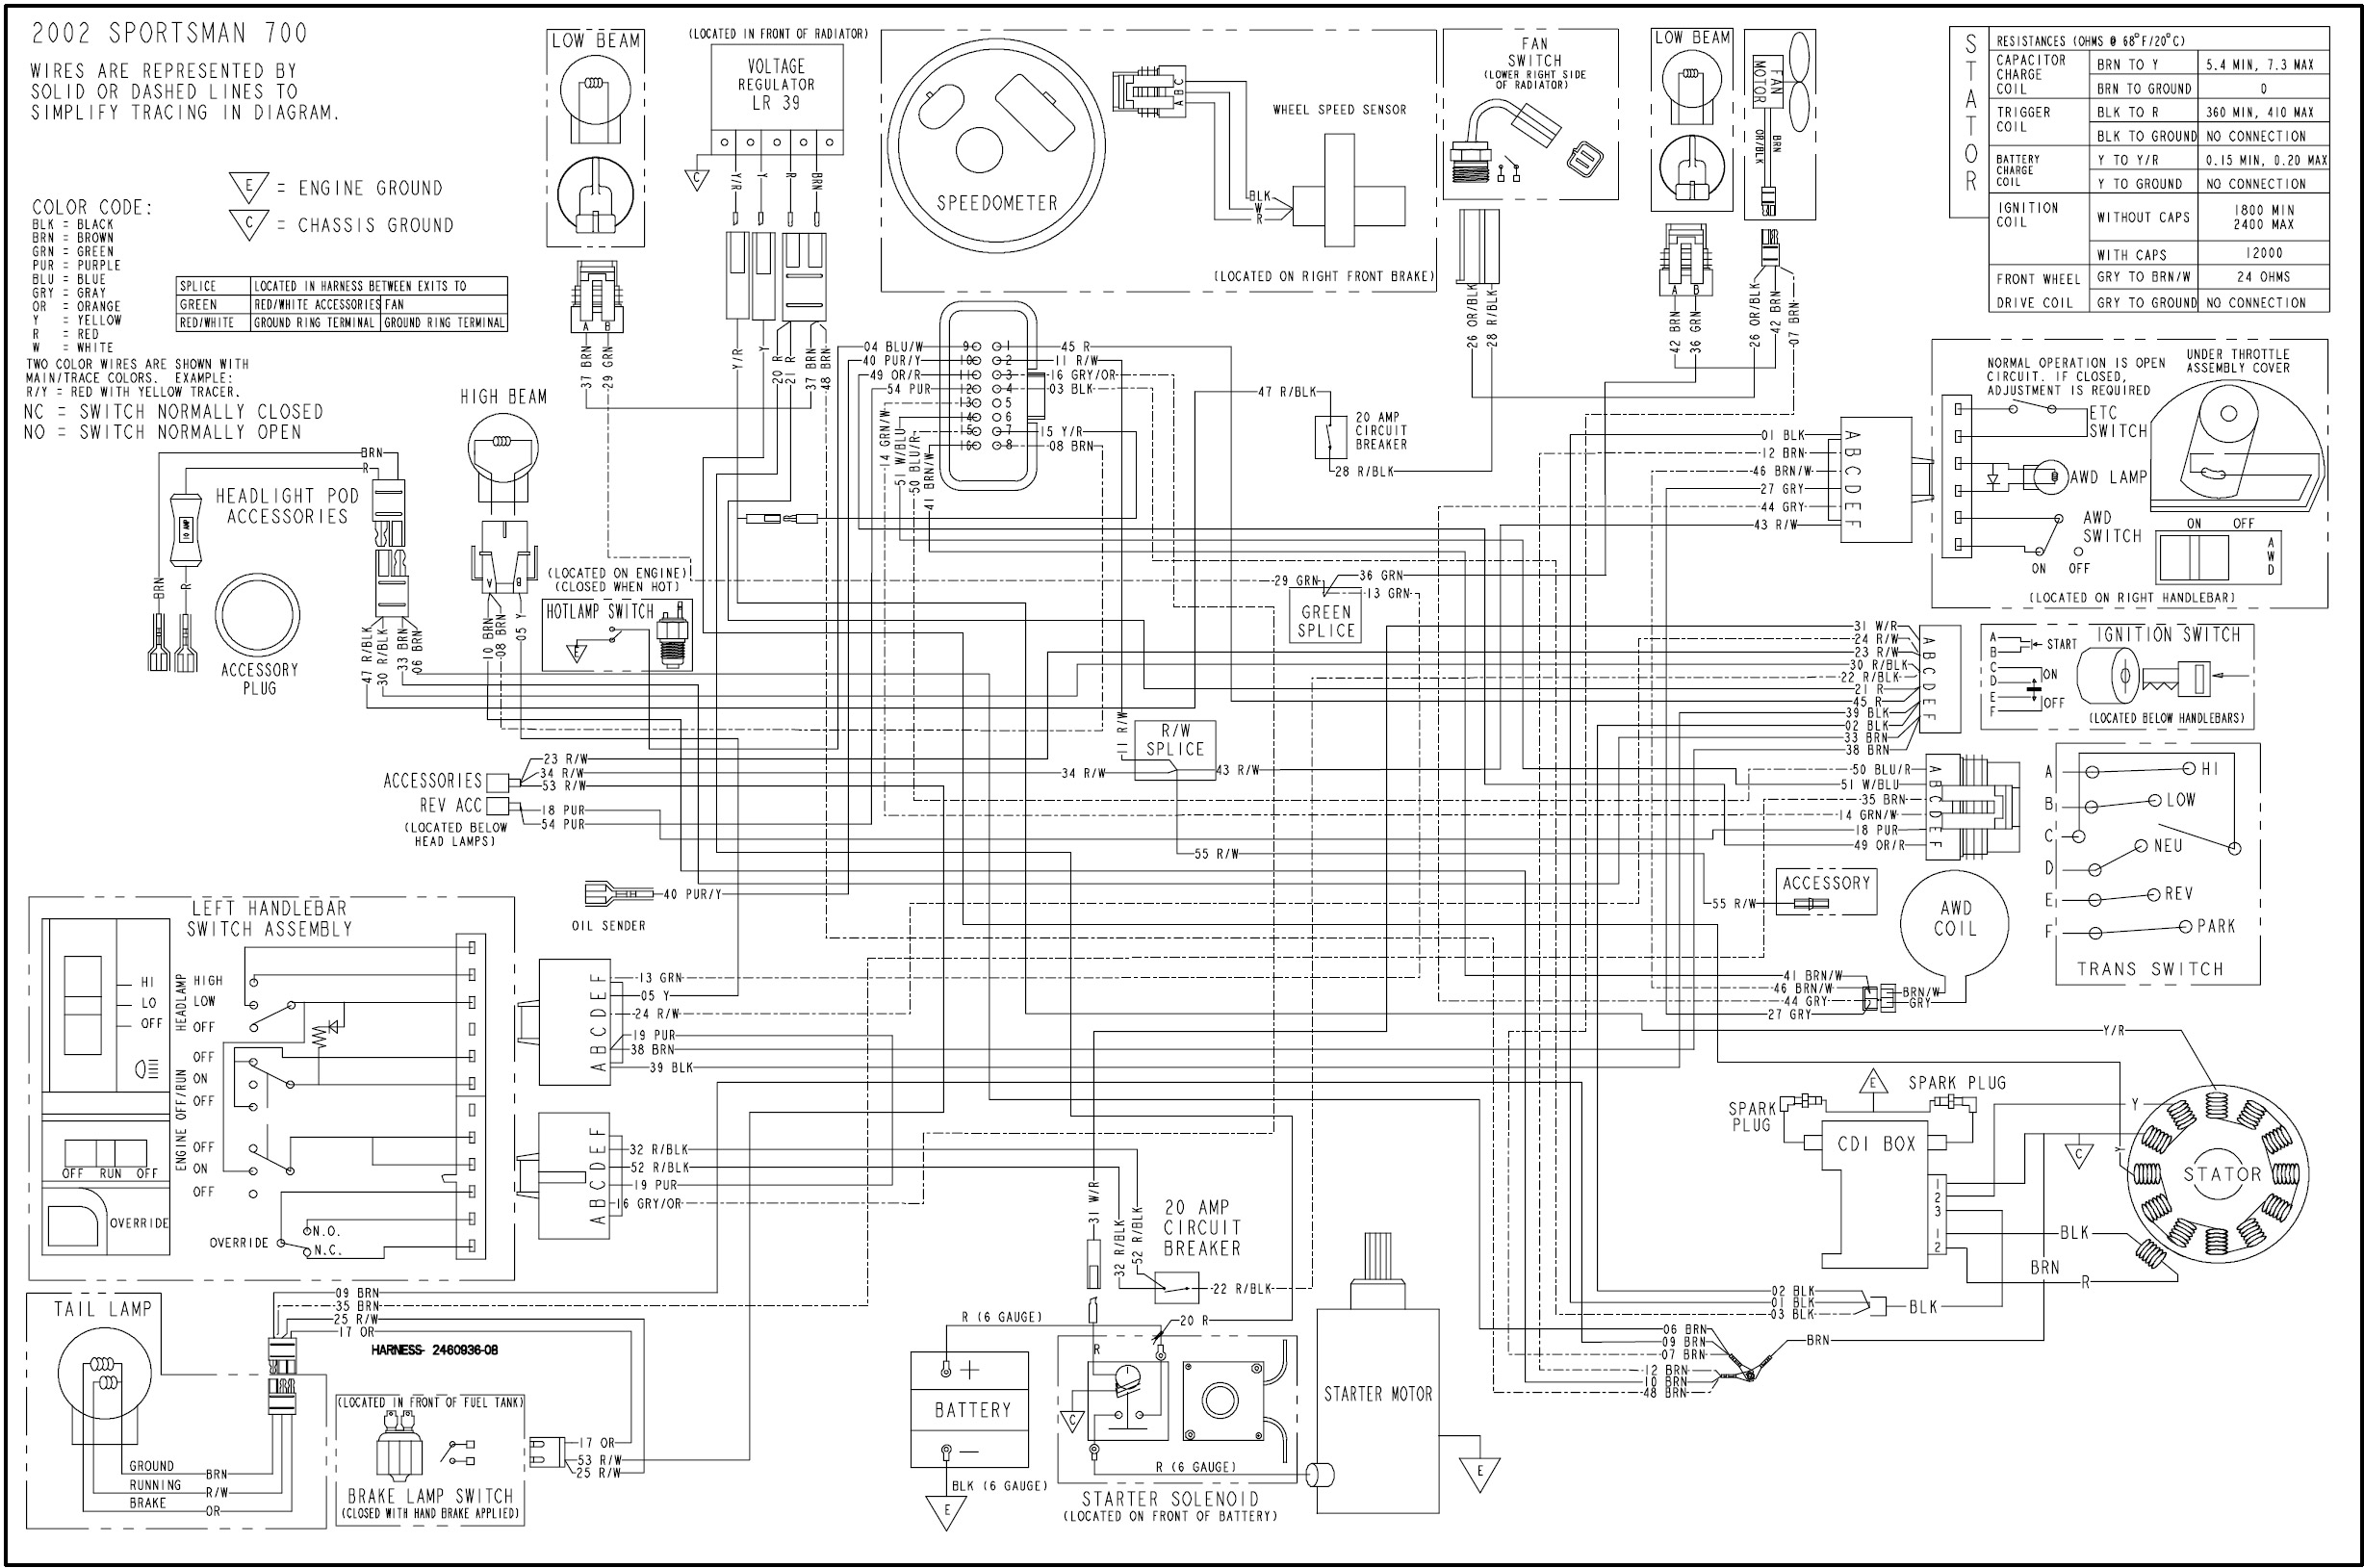 wd_700_02 2003 600 sportsman no spark! polaris atv forum 2004 polaris sportsman 600 wiring diagram at reclaimingppi.co